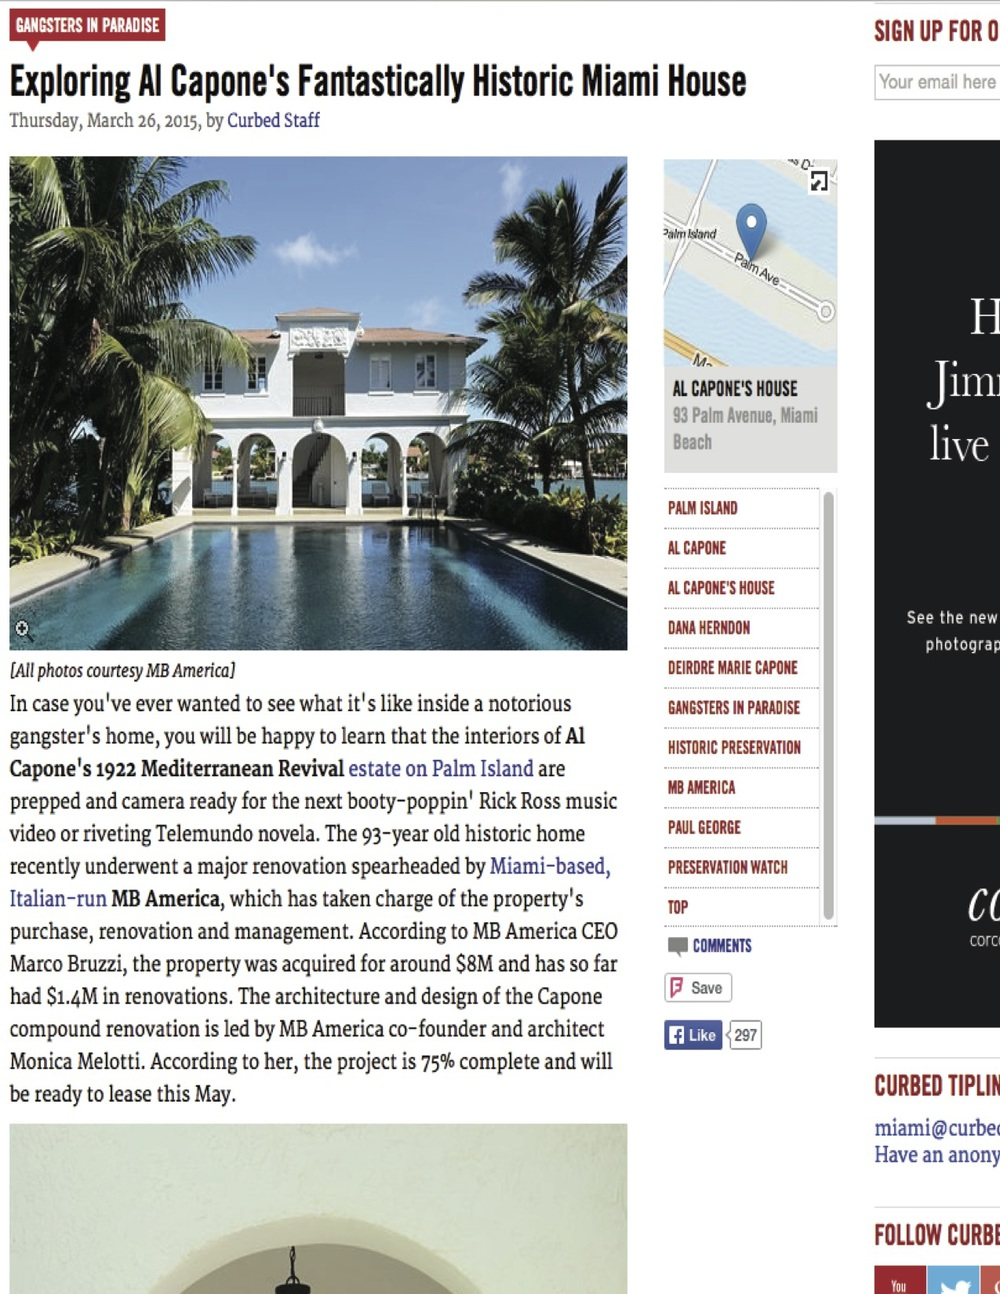 "<p><strong>Curbed Miami</strong><a href=""http://miami.curbed.com/archives/2015/03/26/al-capone-house-media-tour.php"" target=""_blank"">View Article →</a></p>"